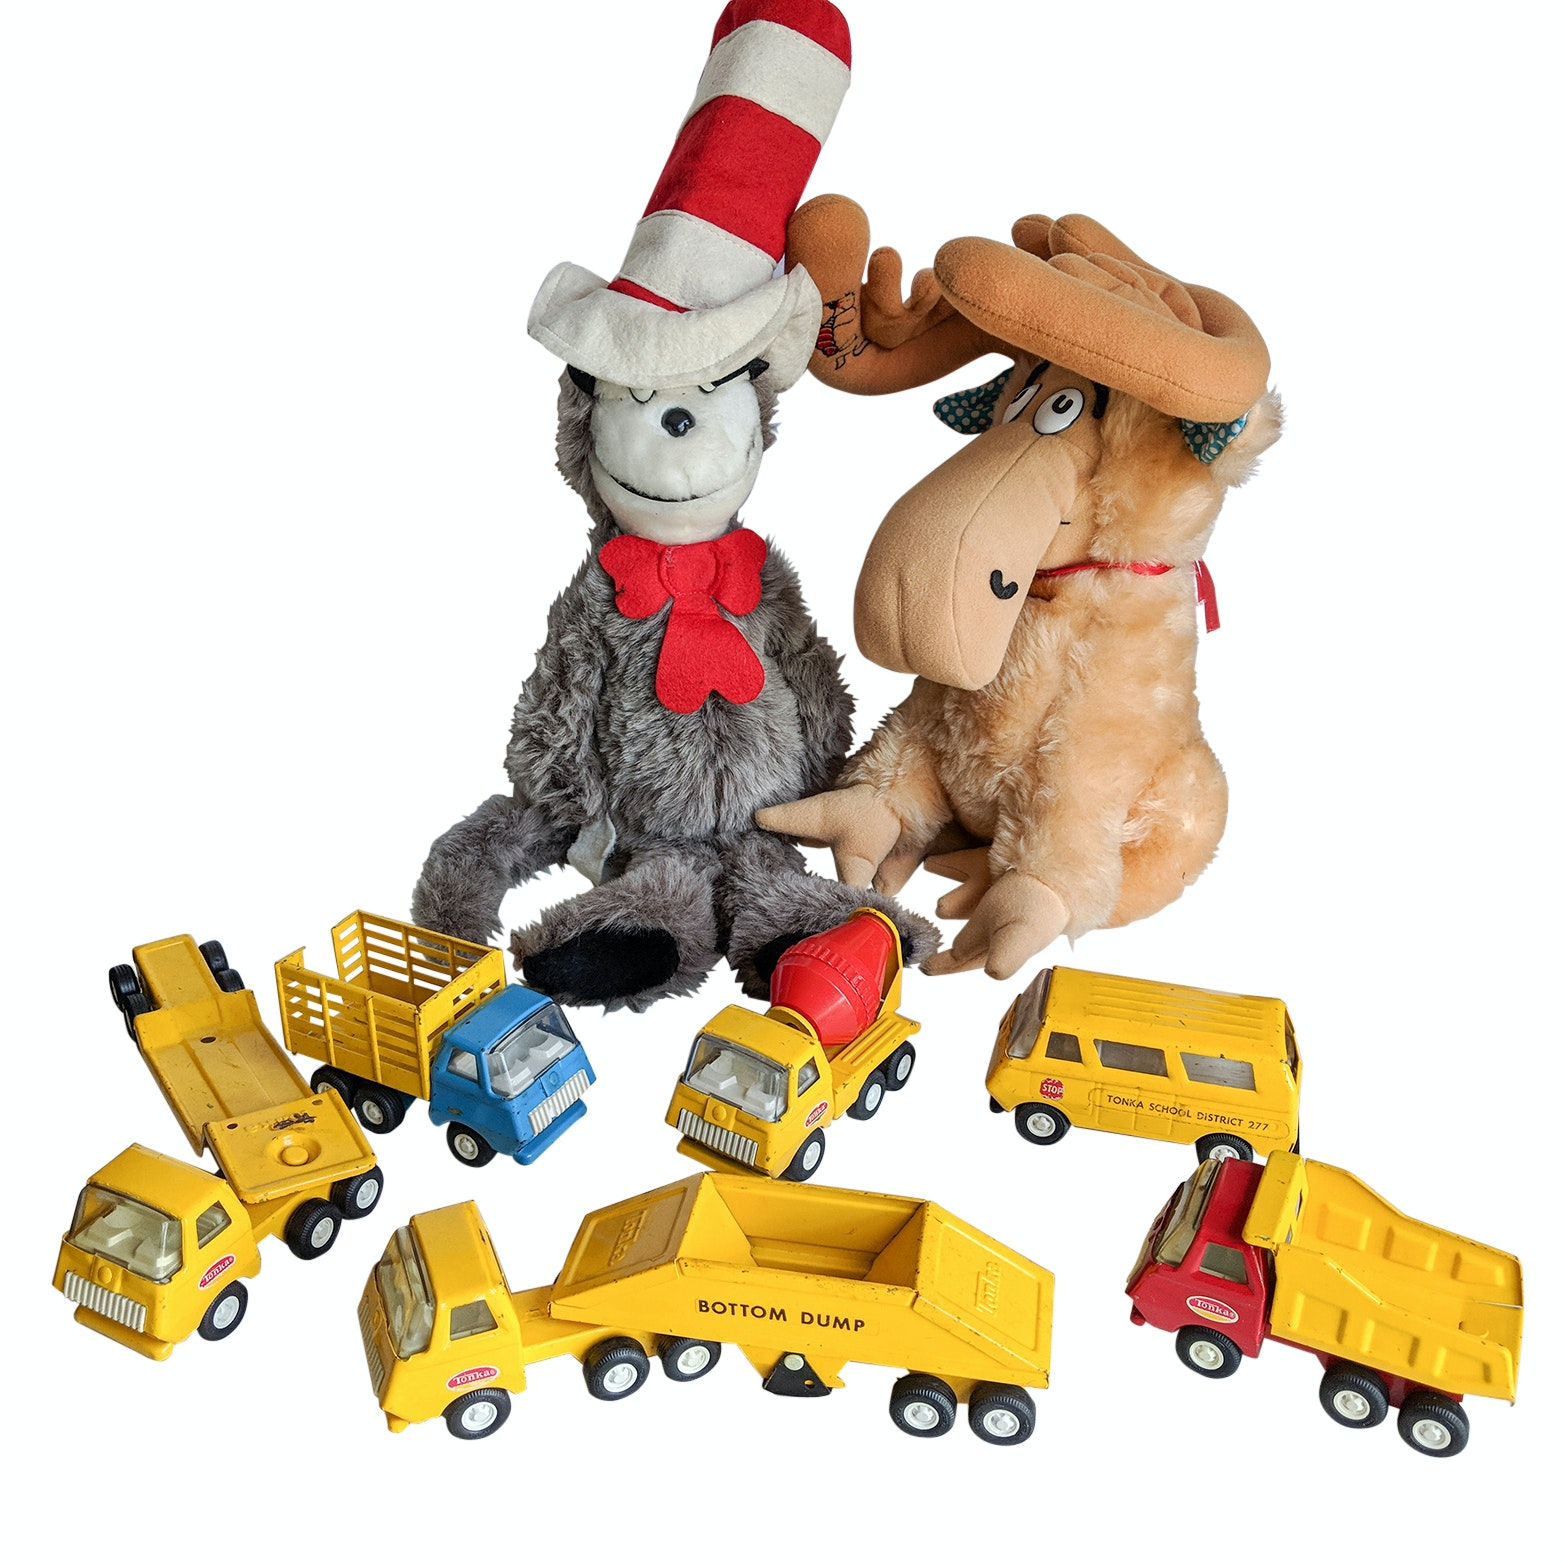 1980s Tonka Trucks And Stuffed Dr Seuss The Cat In The Hat And